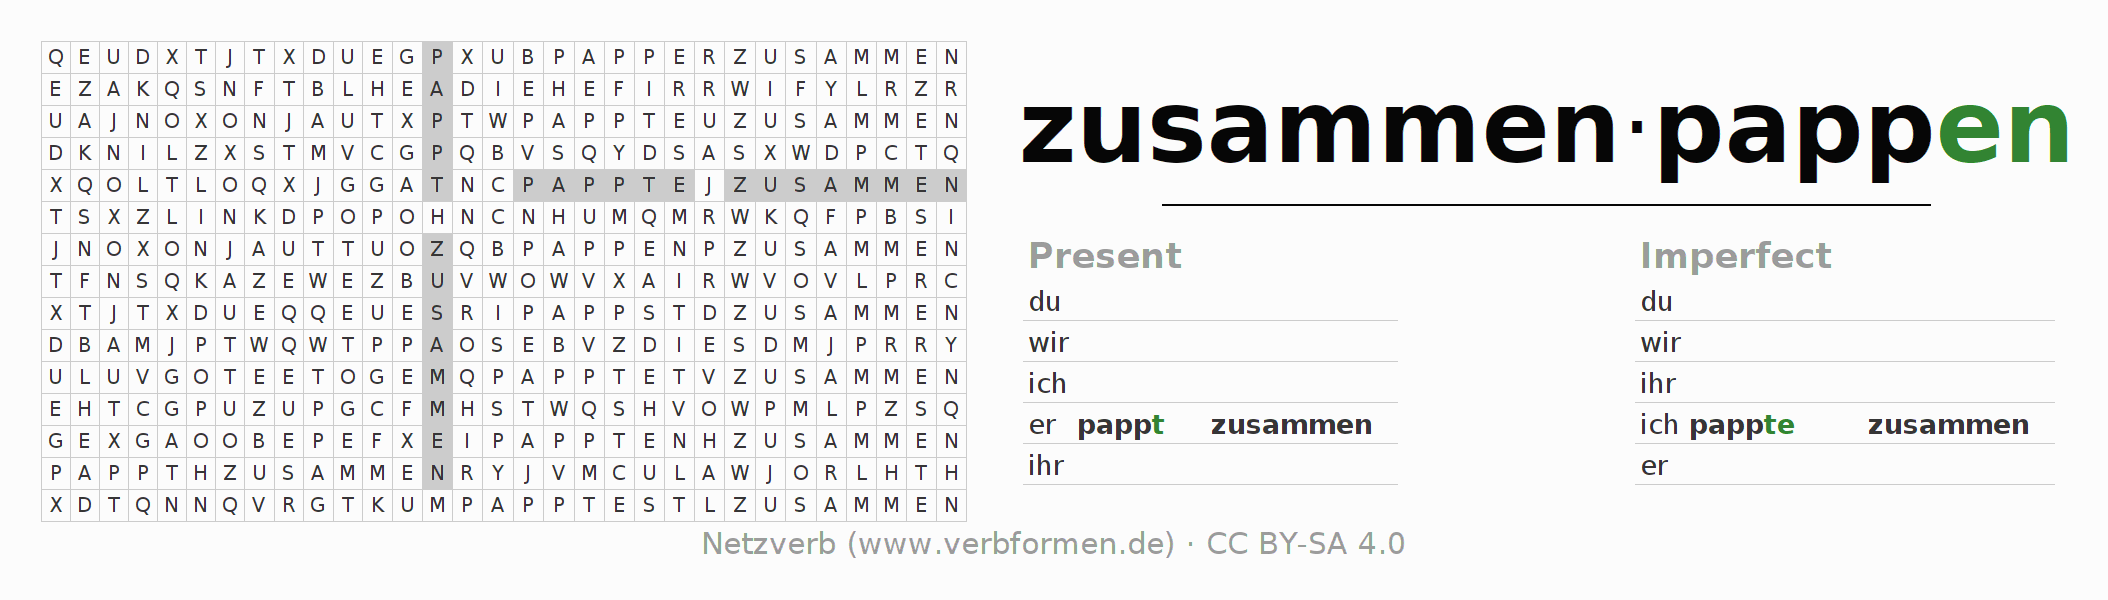 Word search puzzle for the conjugation of the verb zusammenpappen (ist)